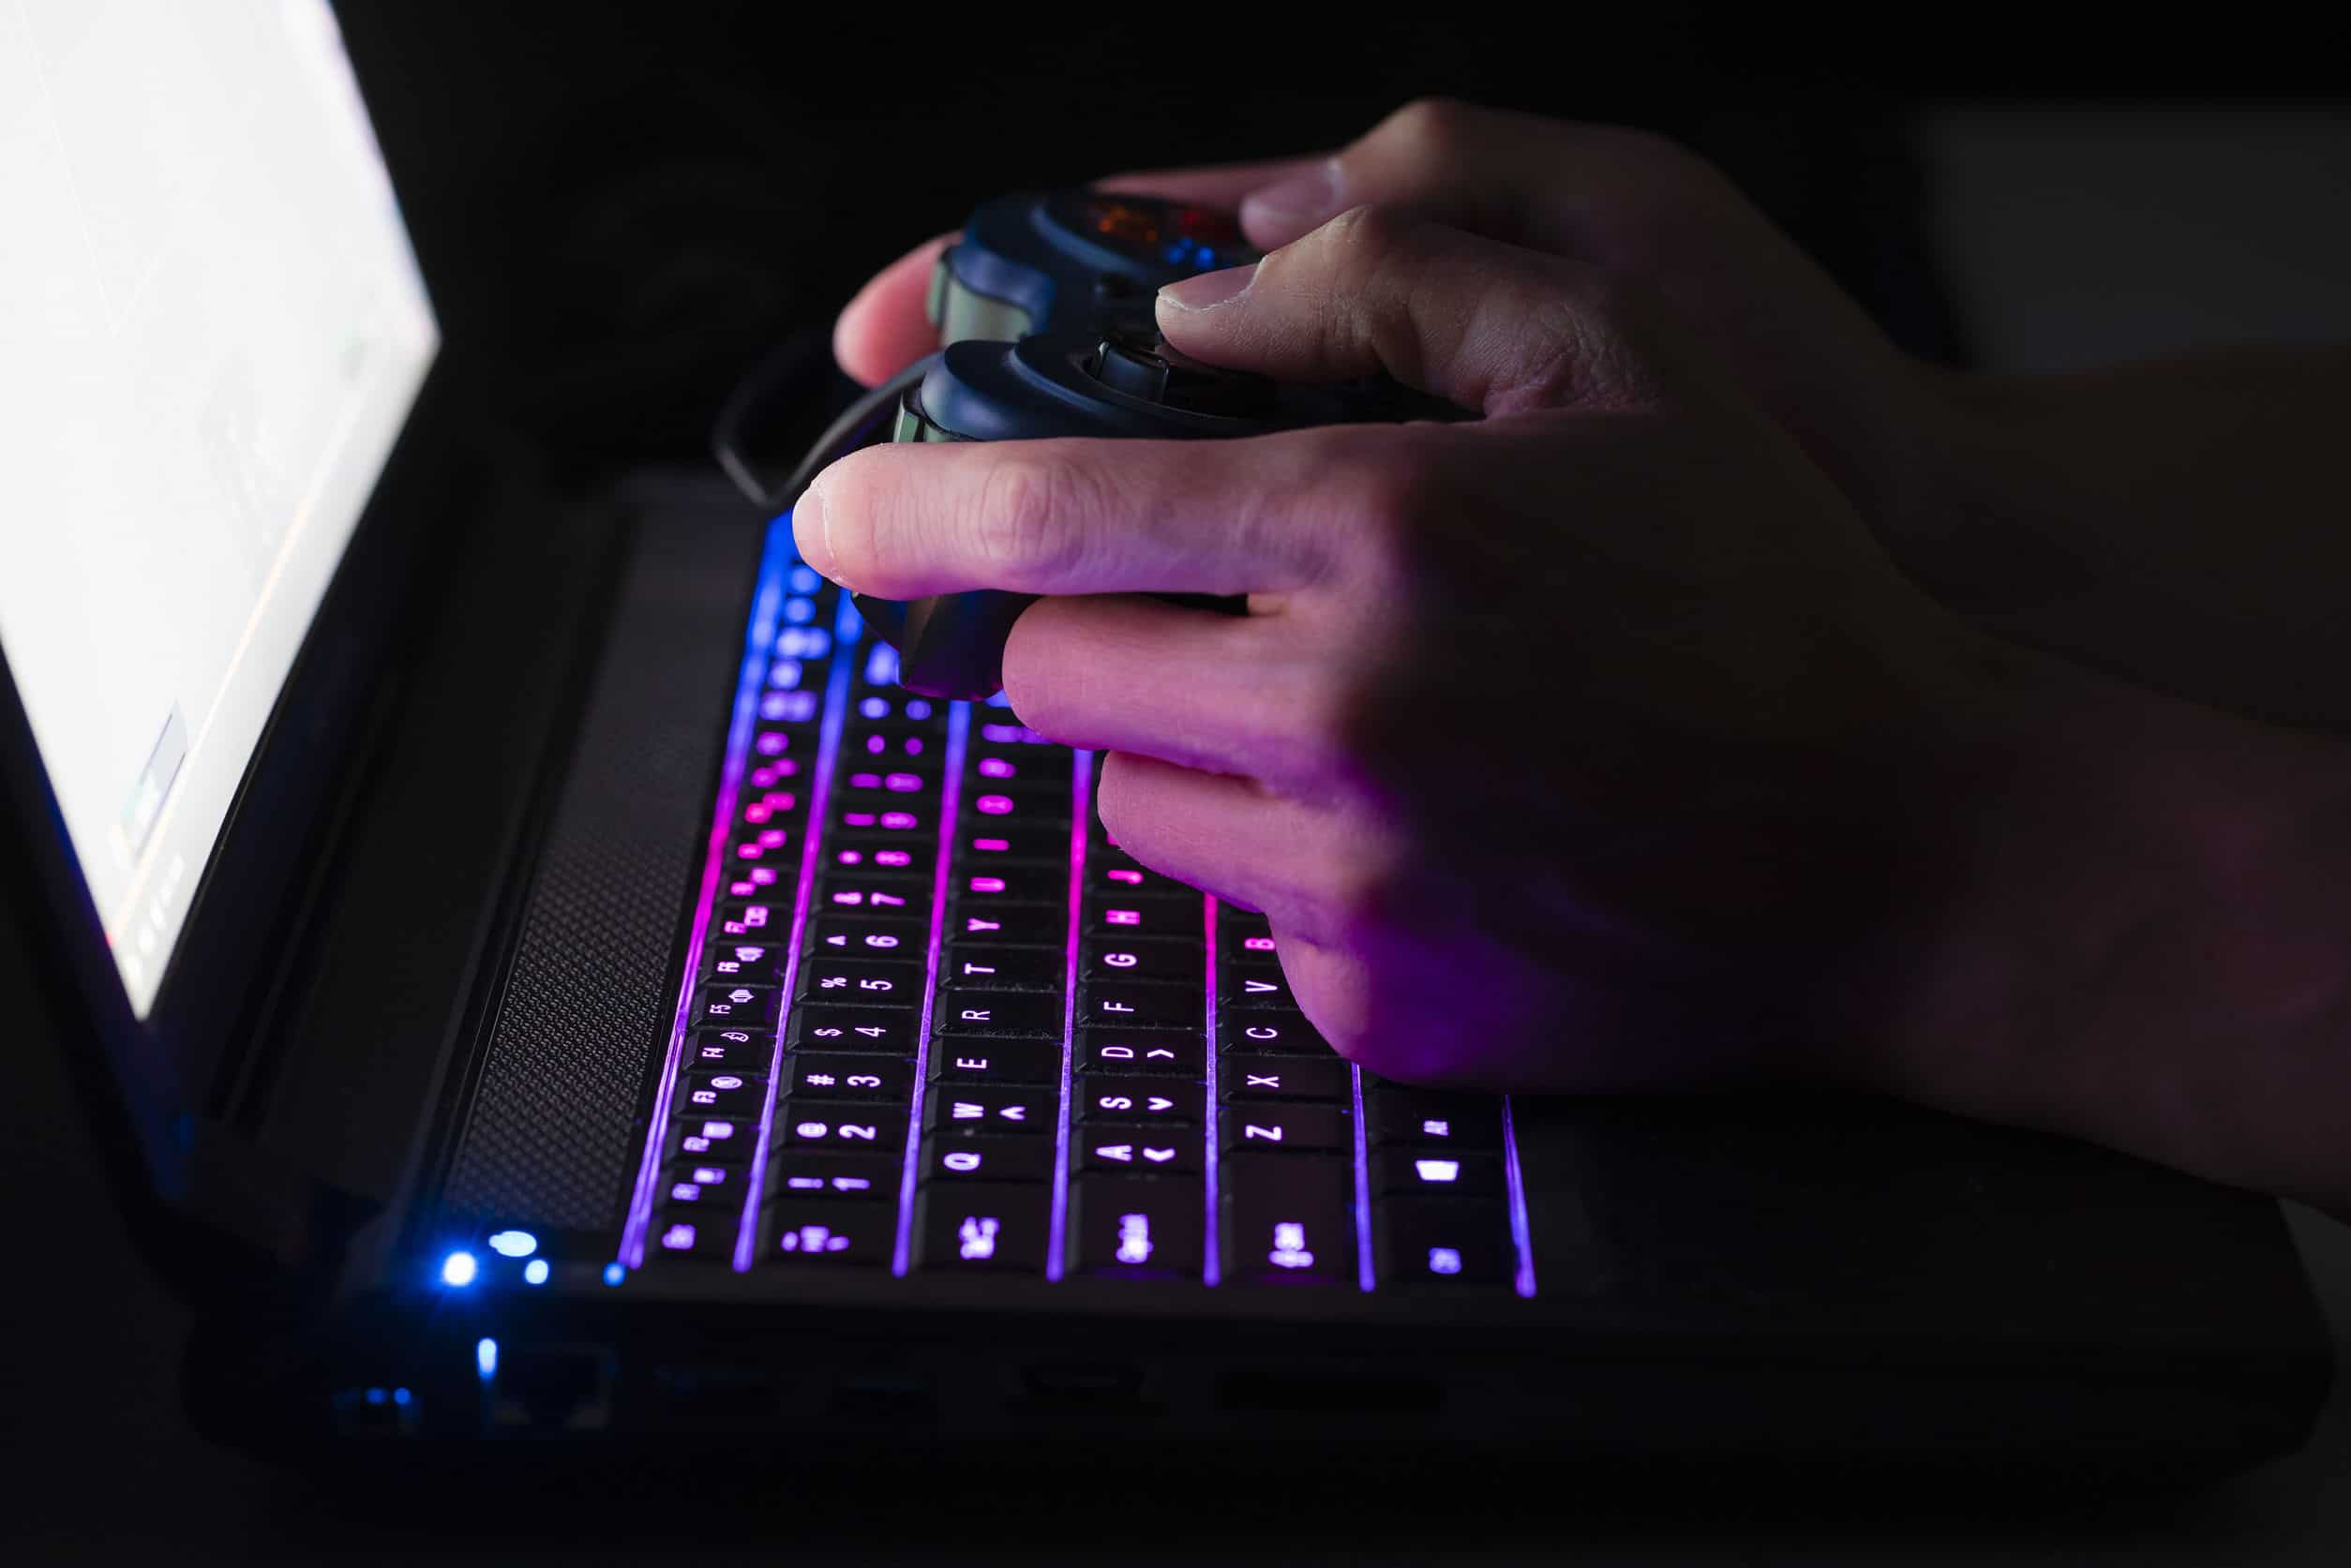 Image shows gamer keyboard in close-up.